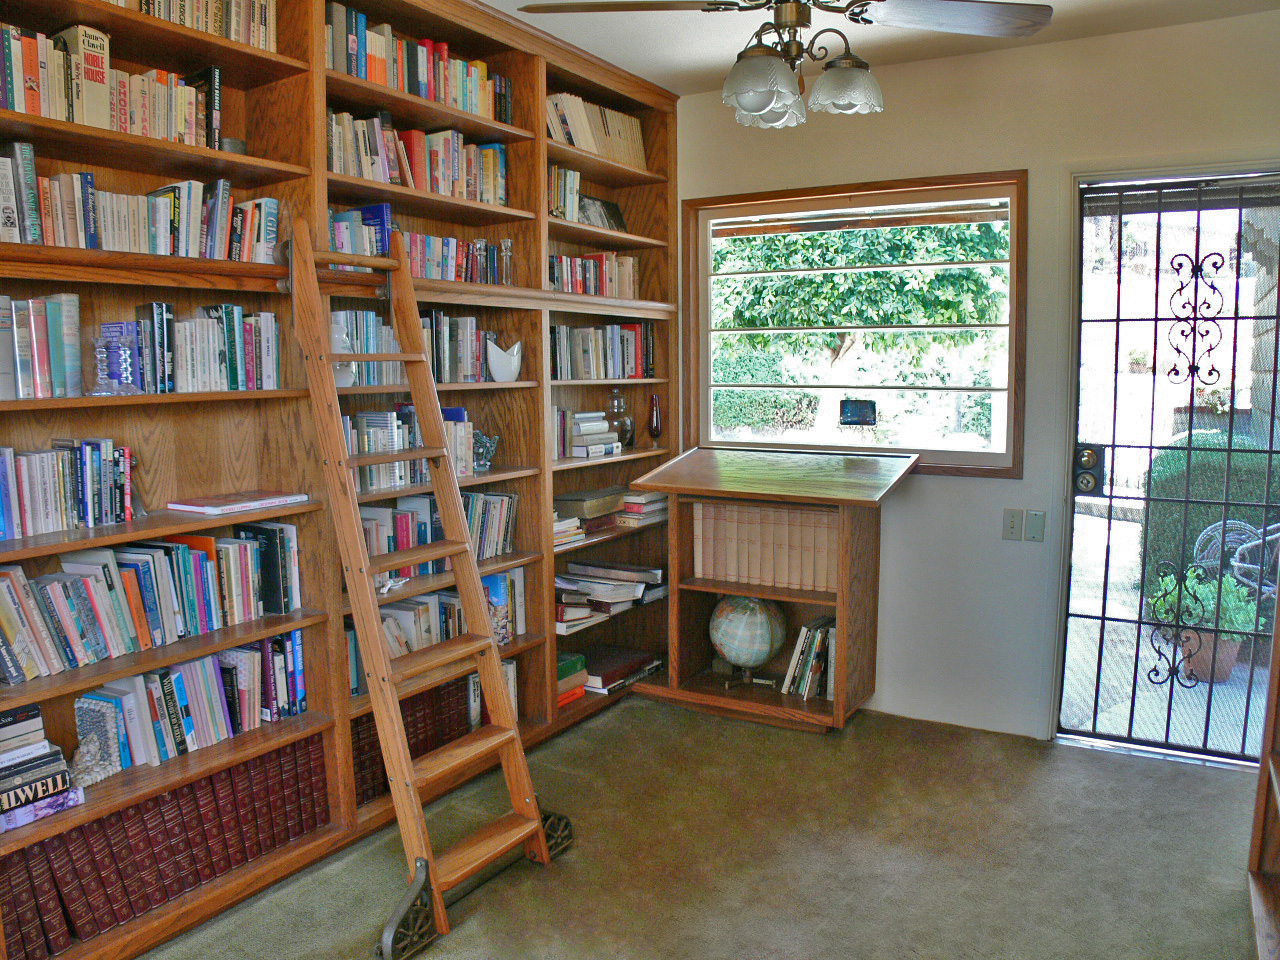 Furniture : short of library ladder rolling how to choose li.